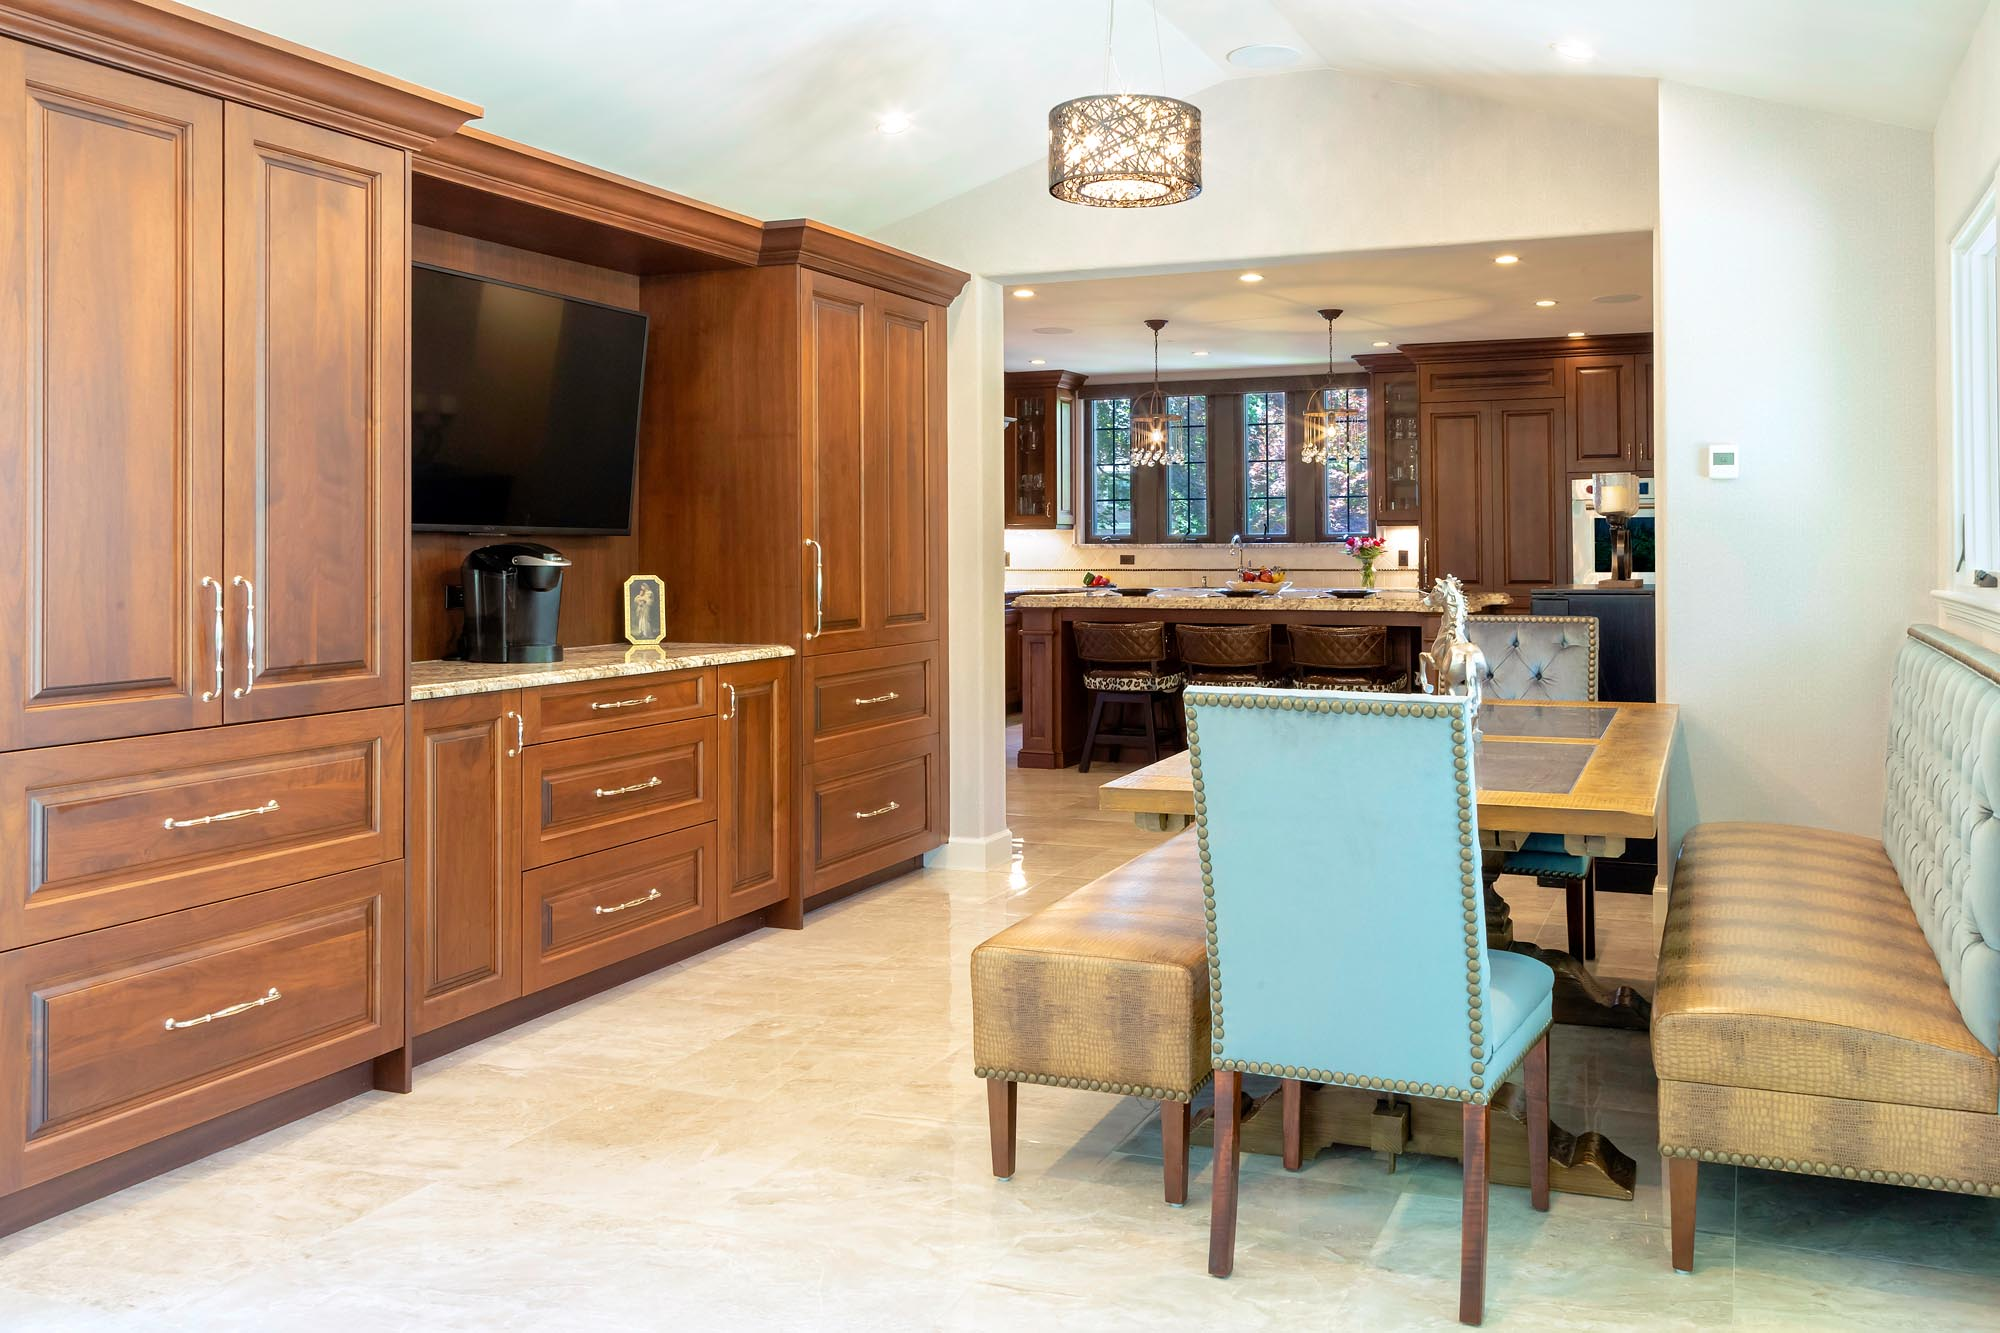 Walnut kitchen and adjoining breakfast area with contemporary nail head chair